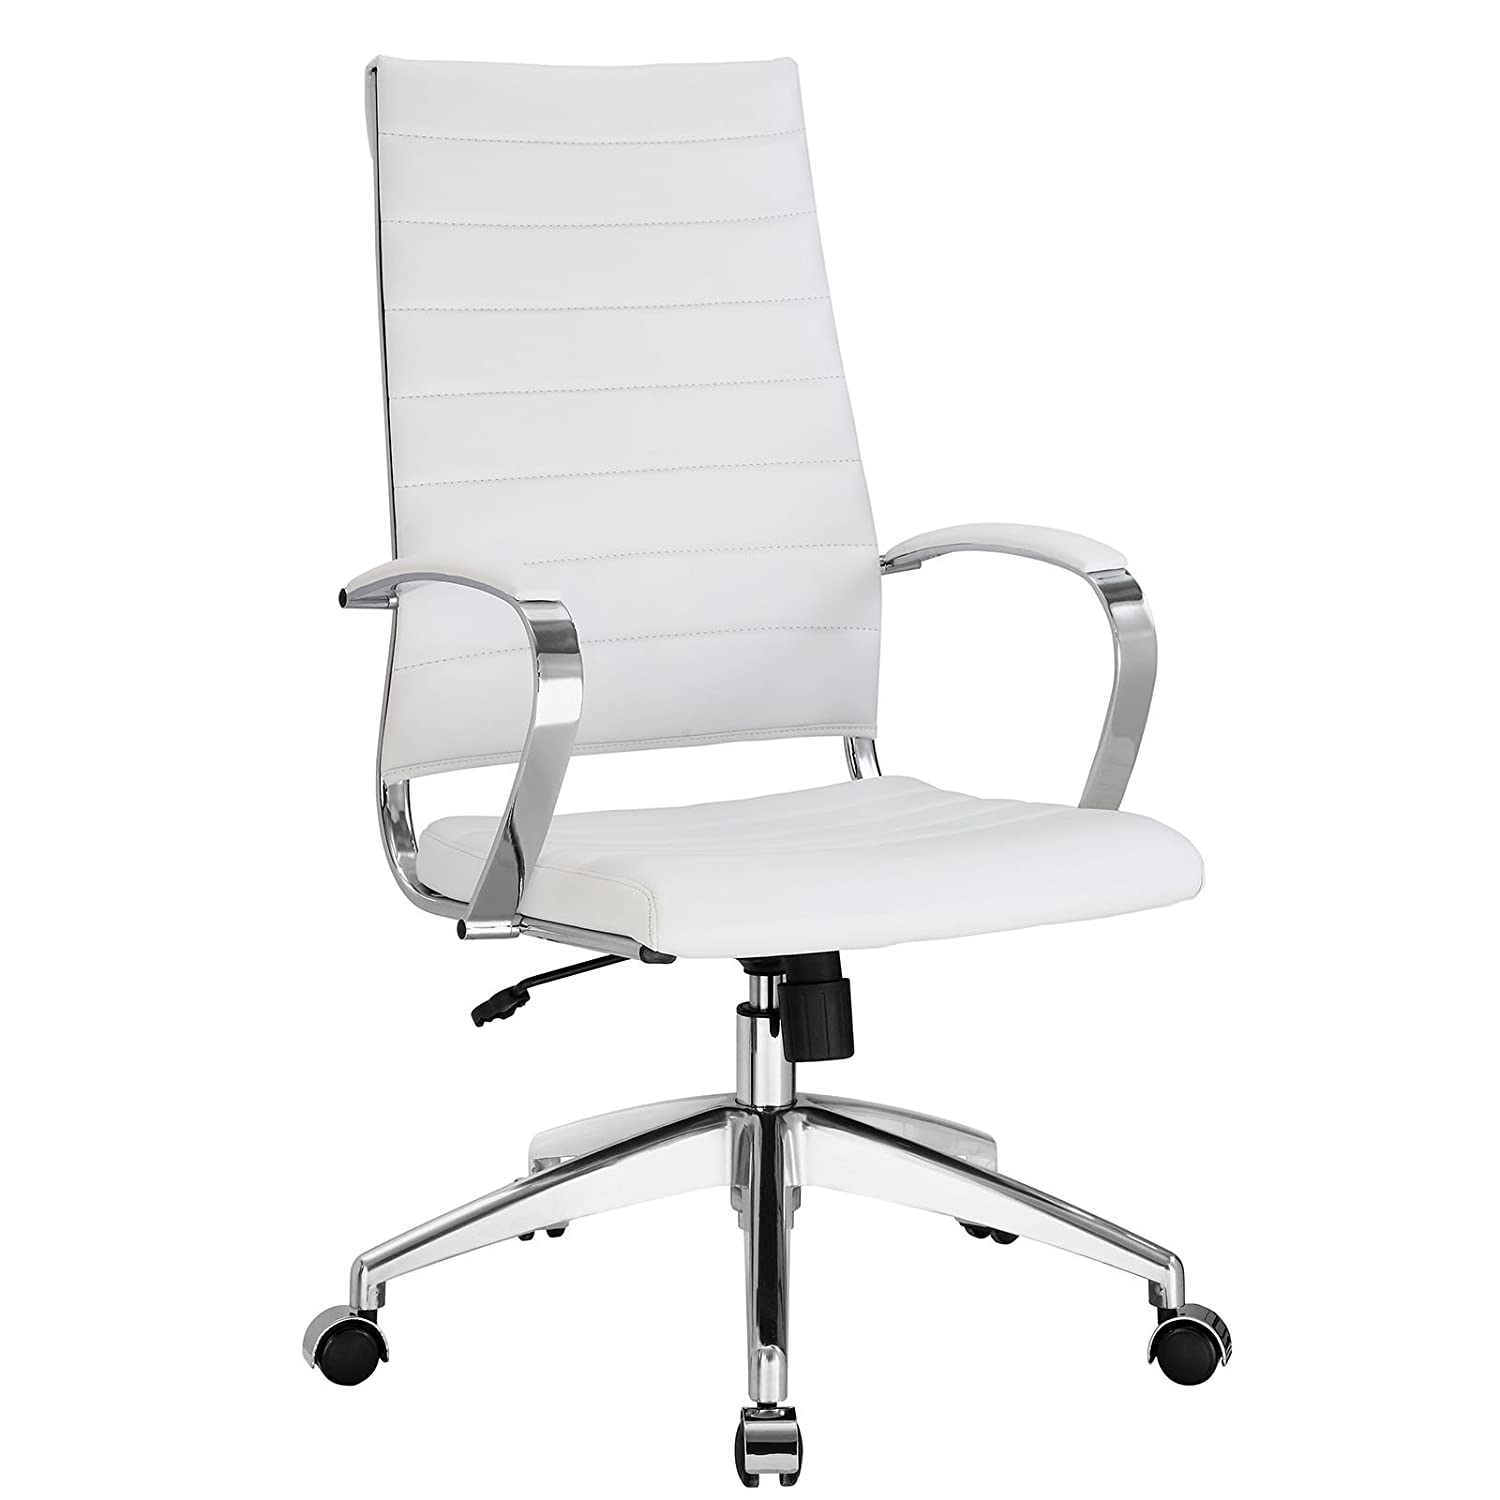 10 best white desk chair options for your office for Best office desk chairs